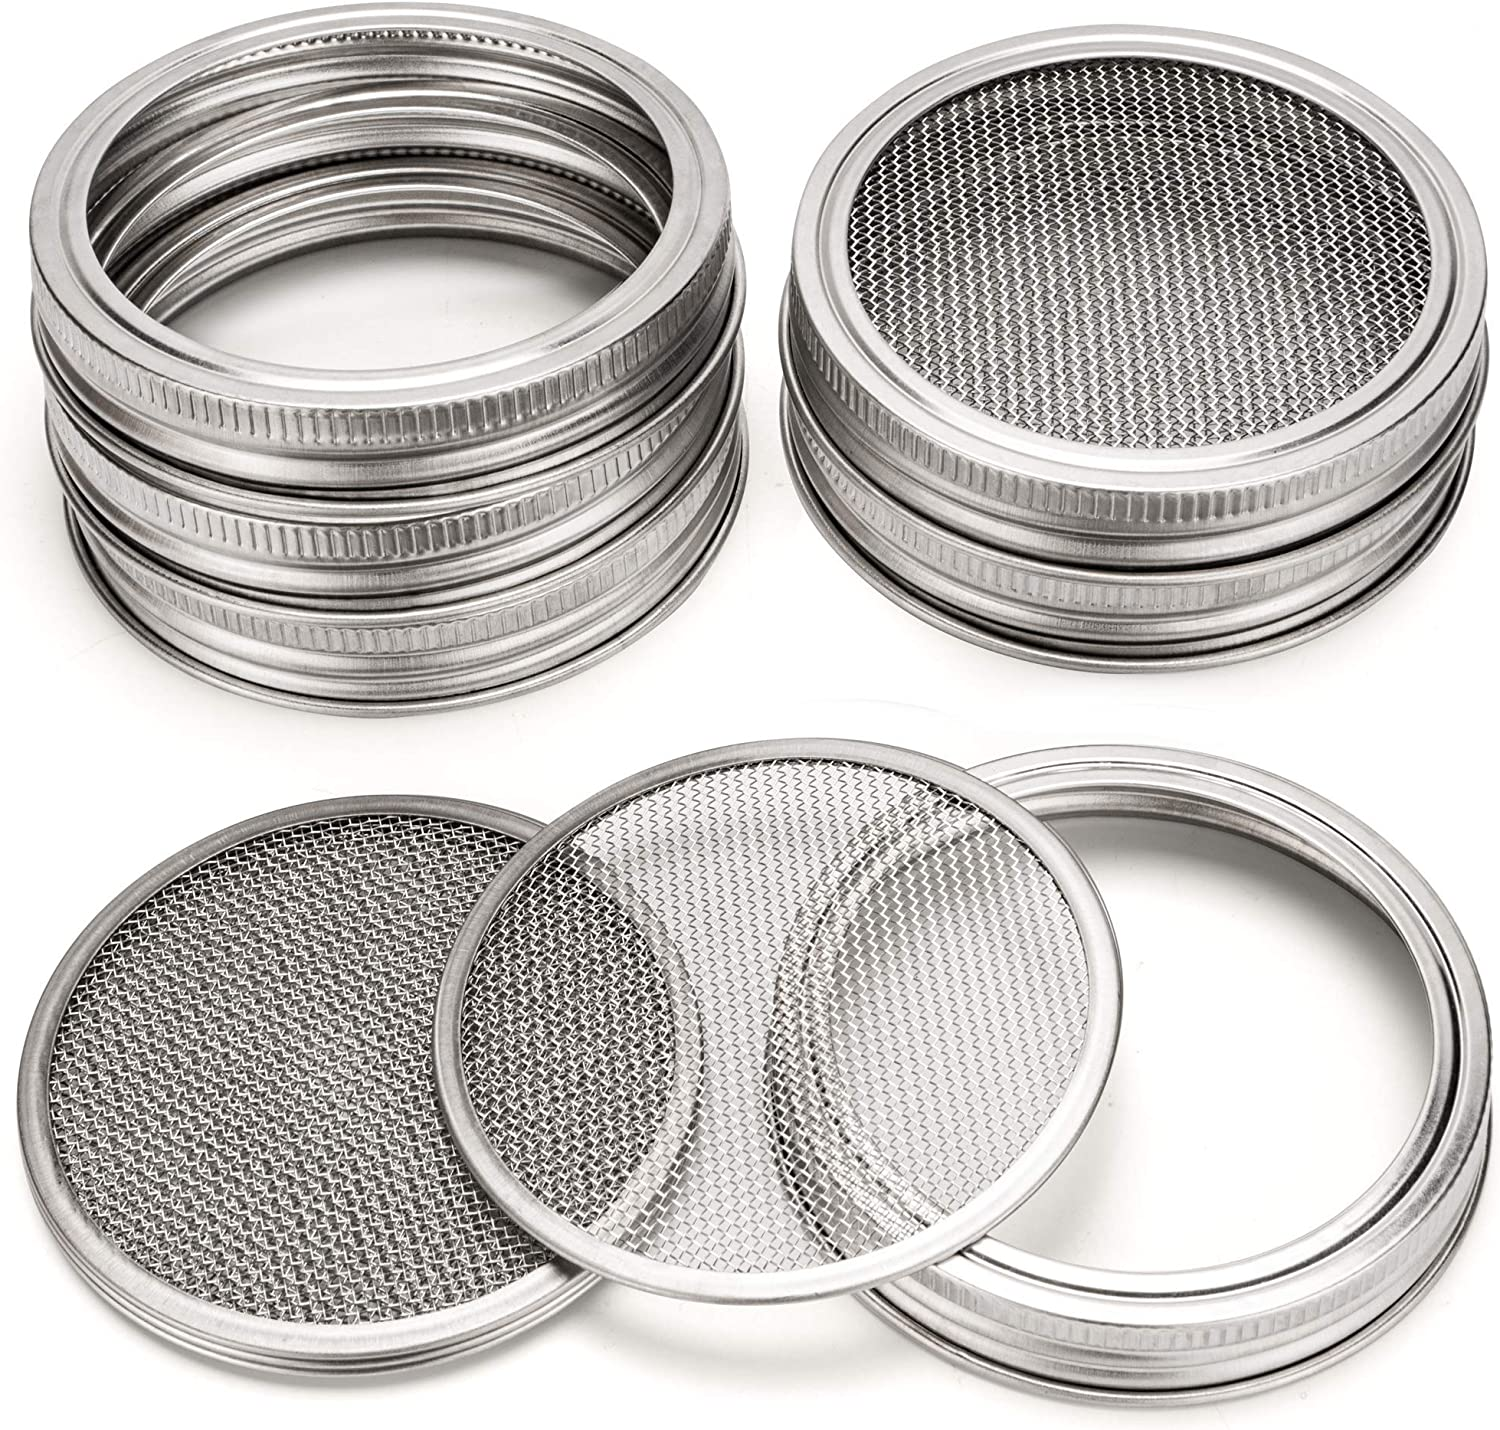 TRAORM 6Pack Sprouting Lids with Stainless Steel Screen for Wide Mouth Mason Jar Sprouting Lids Kit Sprout Germinator Set to Grow Your Own Organic Sprouts(Jar not Included) (Silver)